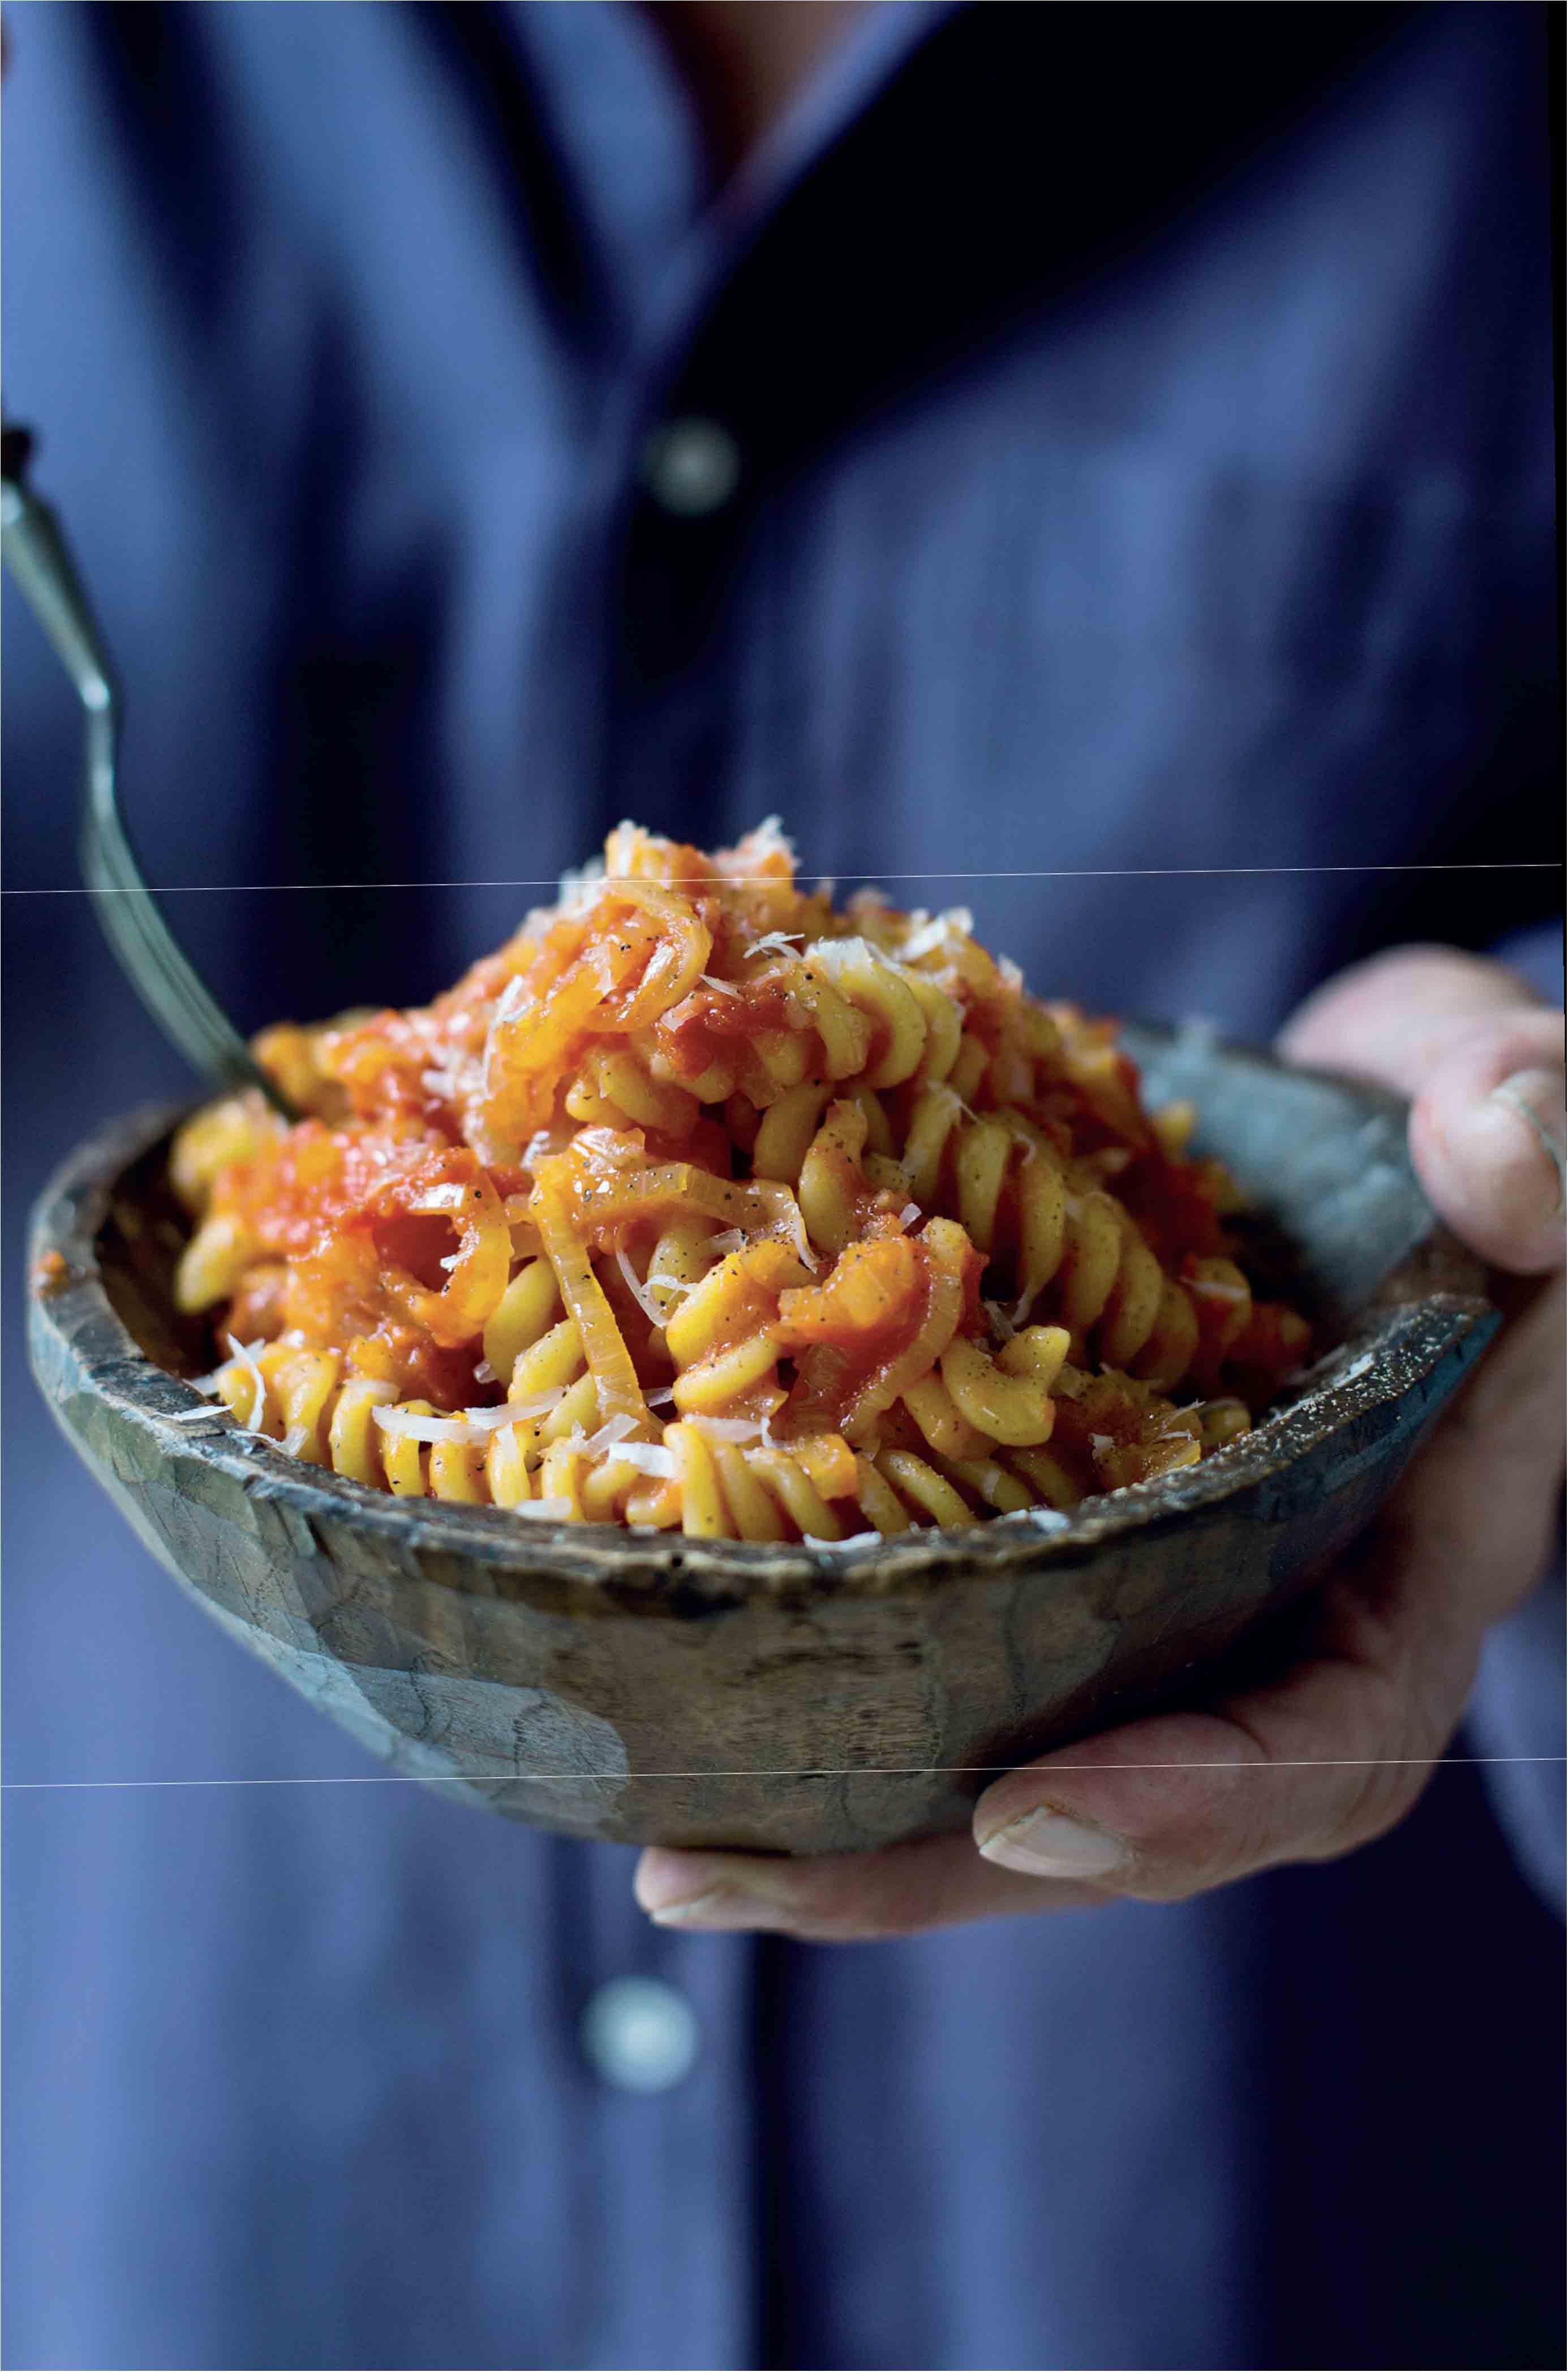 Spiral pasta with a Genoese onion and tomato sauce